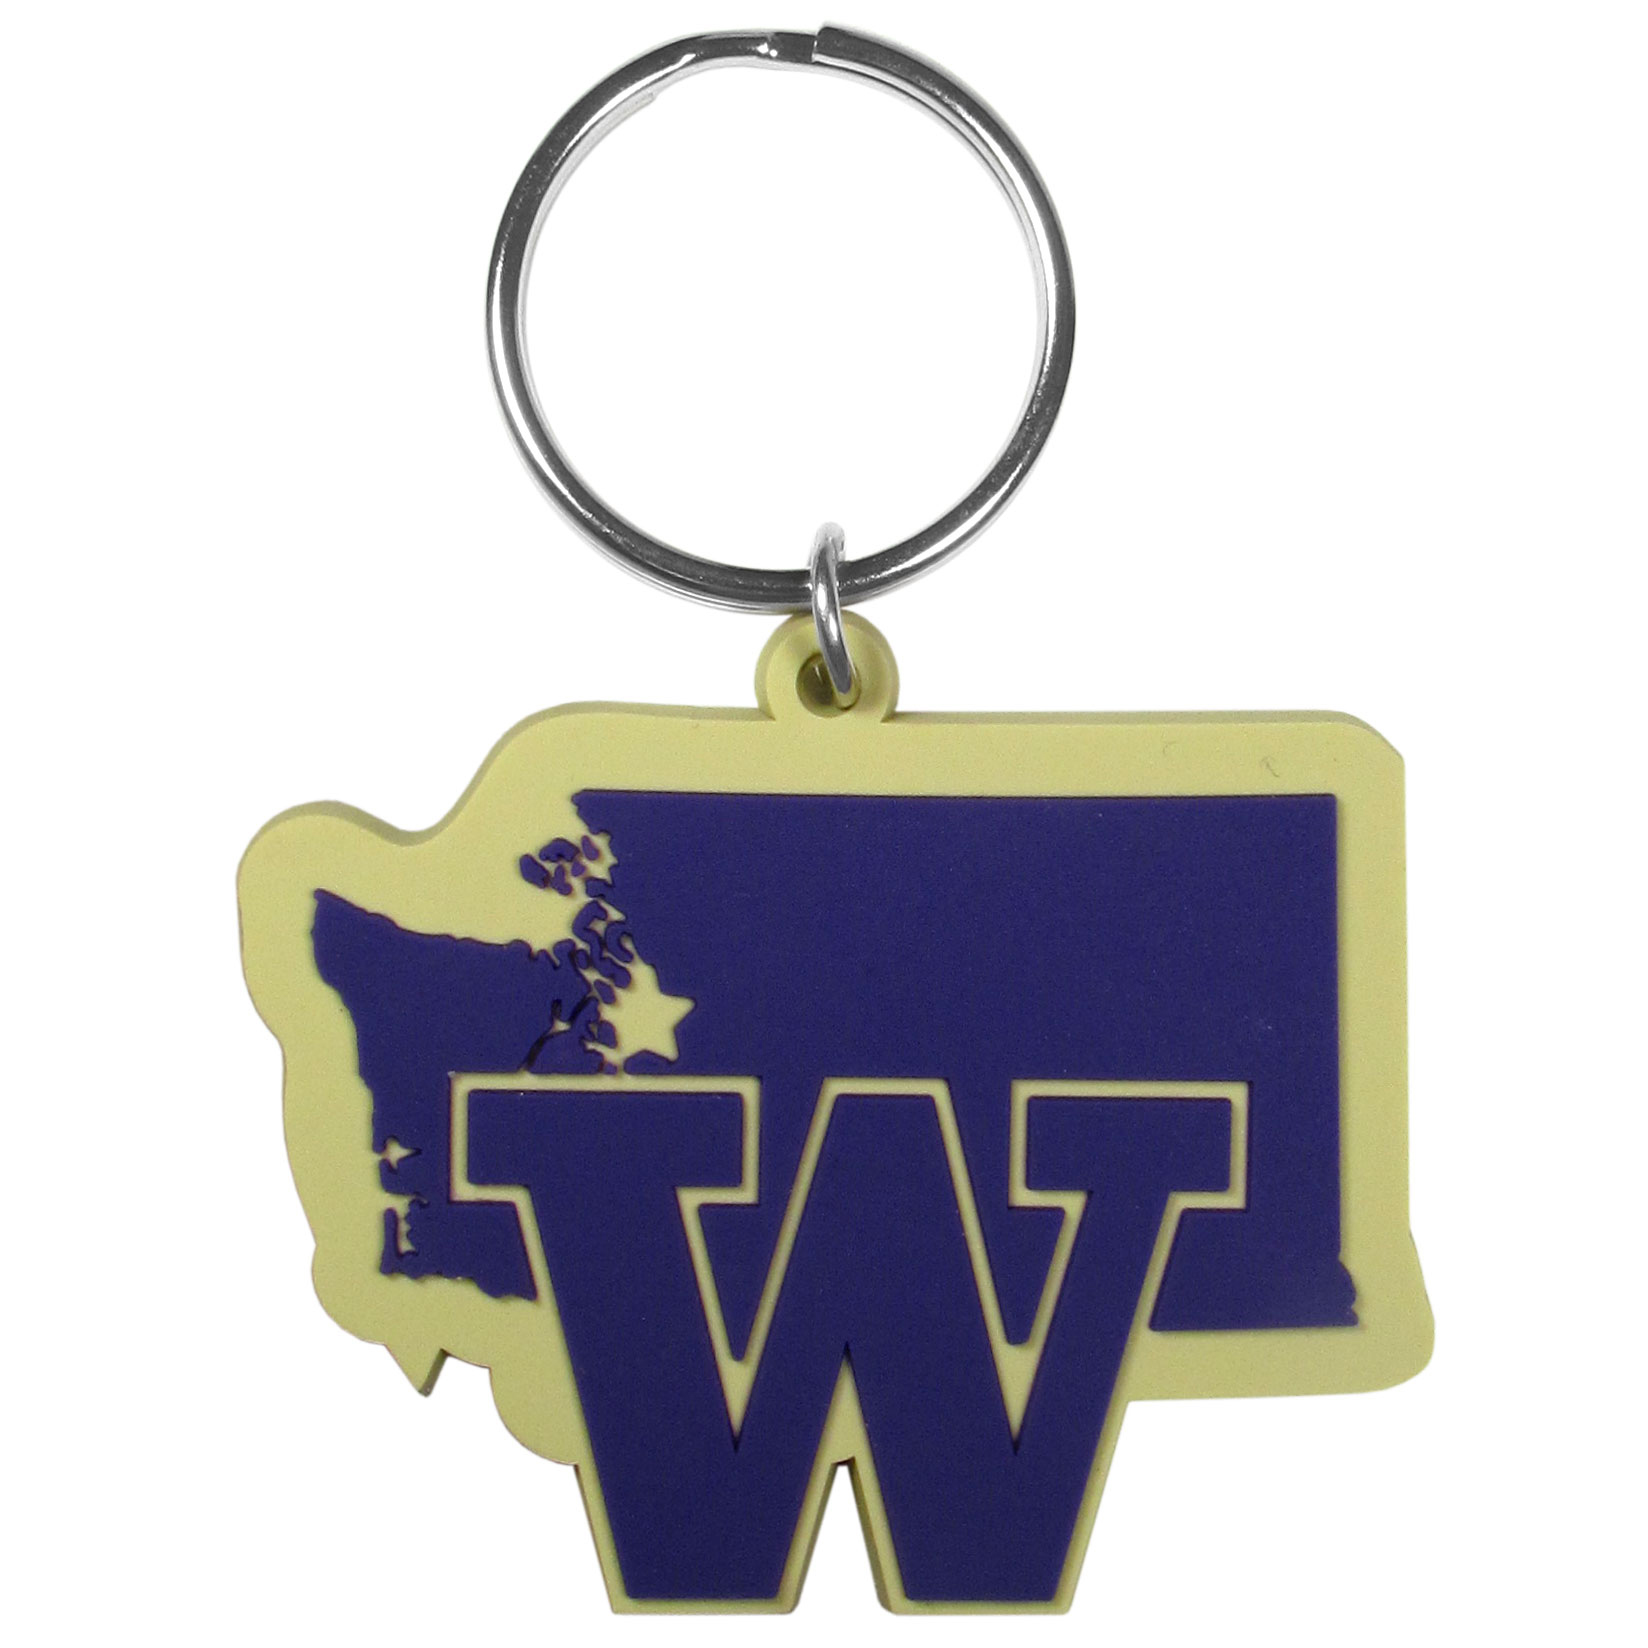 Washington Huskies Home State Flexi Key Chain - Our flexible Washington Huskies key chains are a fun way to carry your team with you. The pliable rubber material is extremely durable and the layered colors add a great 3D look to the key chain. This is really where quality and a great price meet to create a true fan favorite.